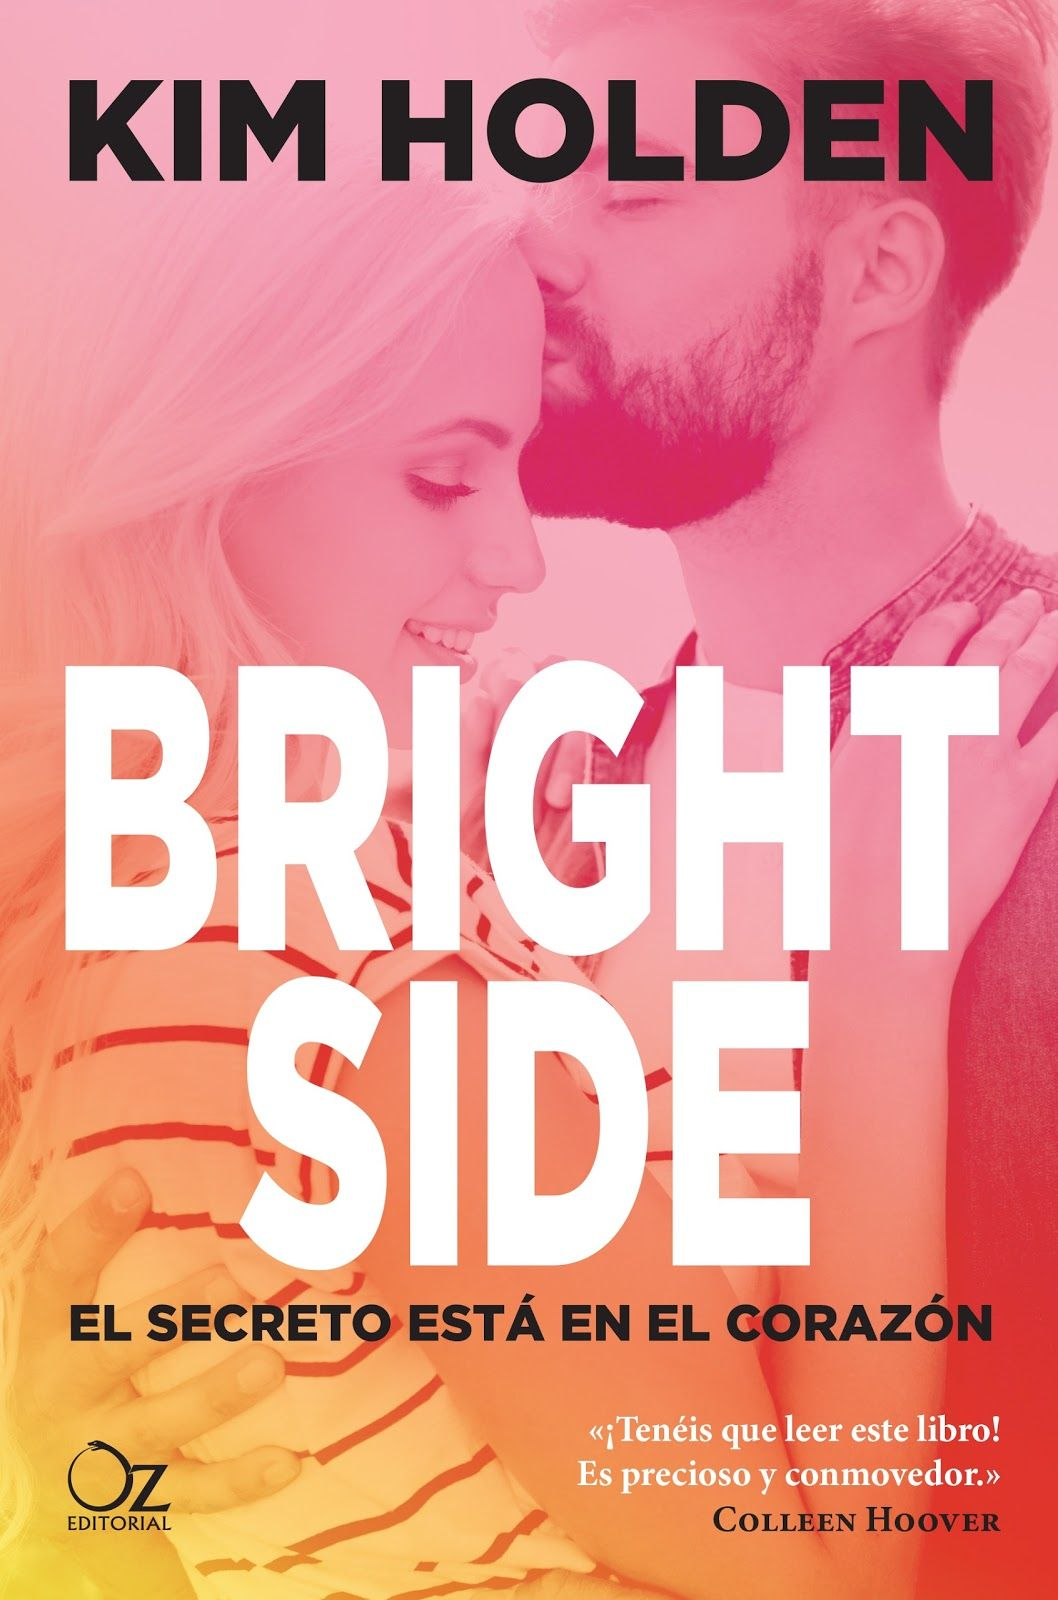 Blog De Descarga De Libros P R O M E S A S D E A M O R Reseña Bright Side Kim Holden